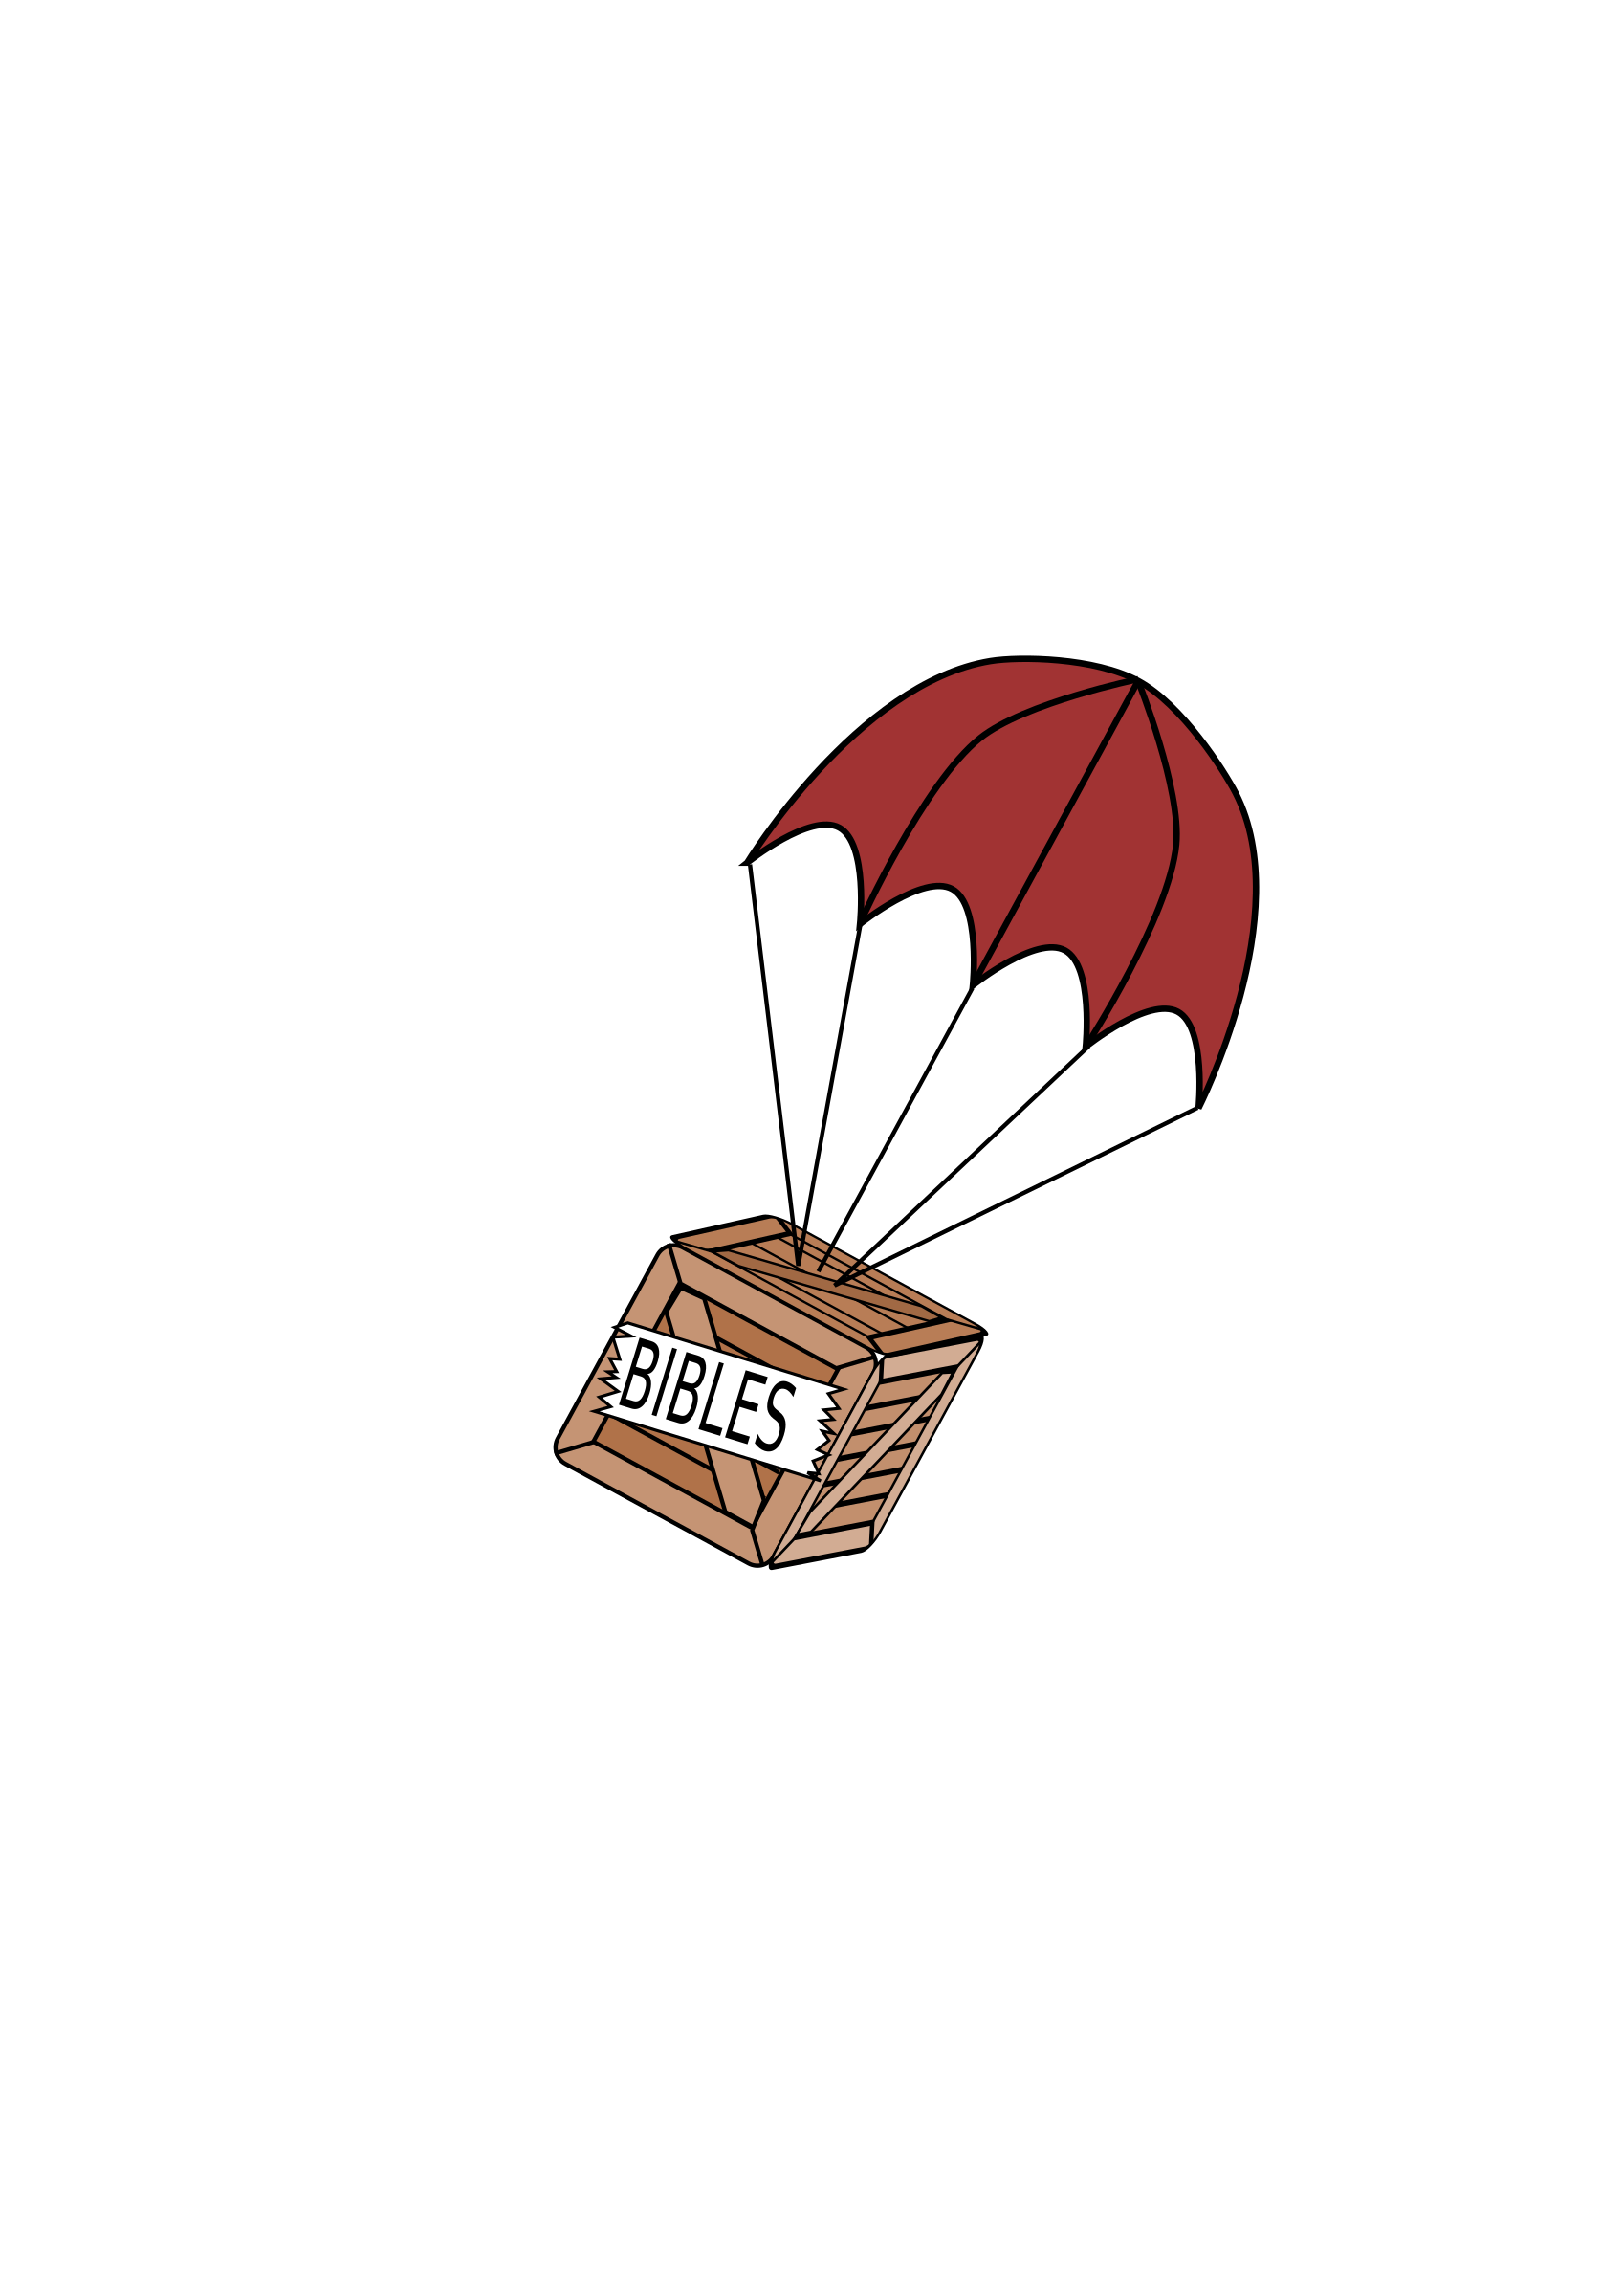 Parachute on of bibles. Clipart box crate